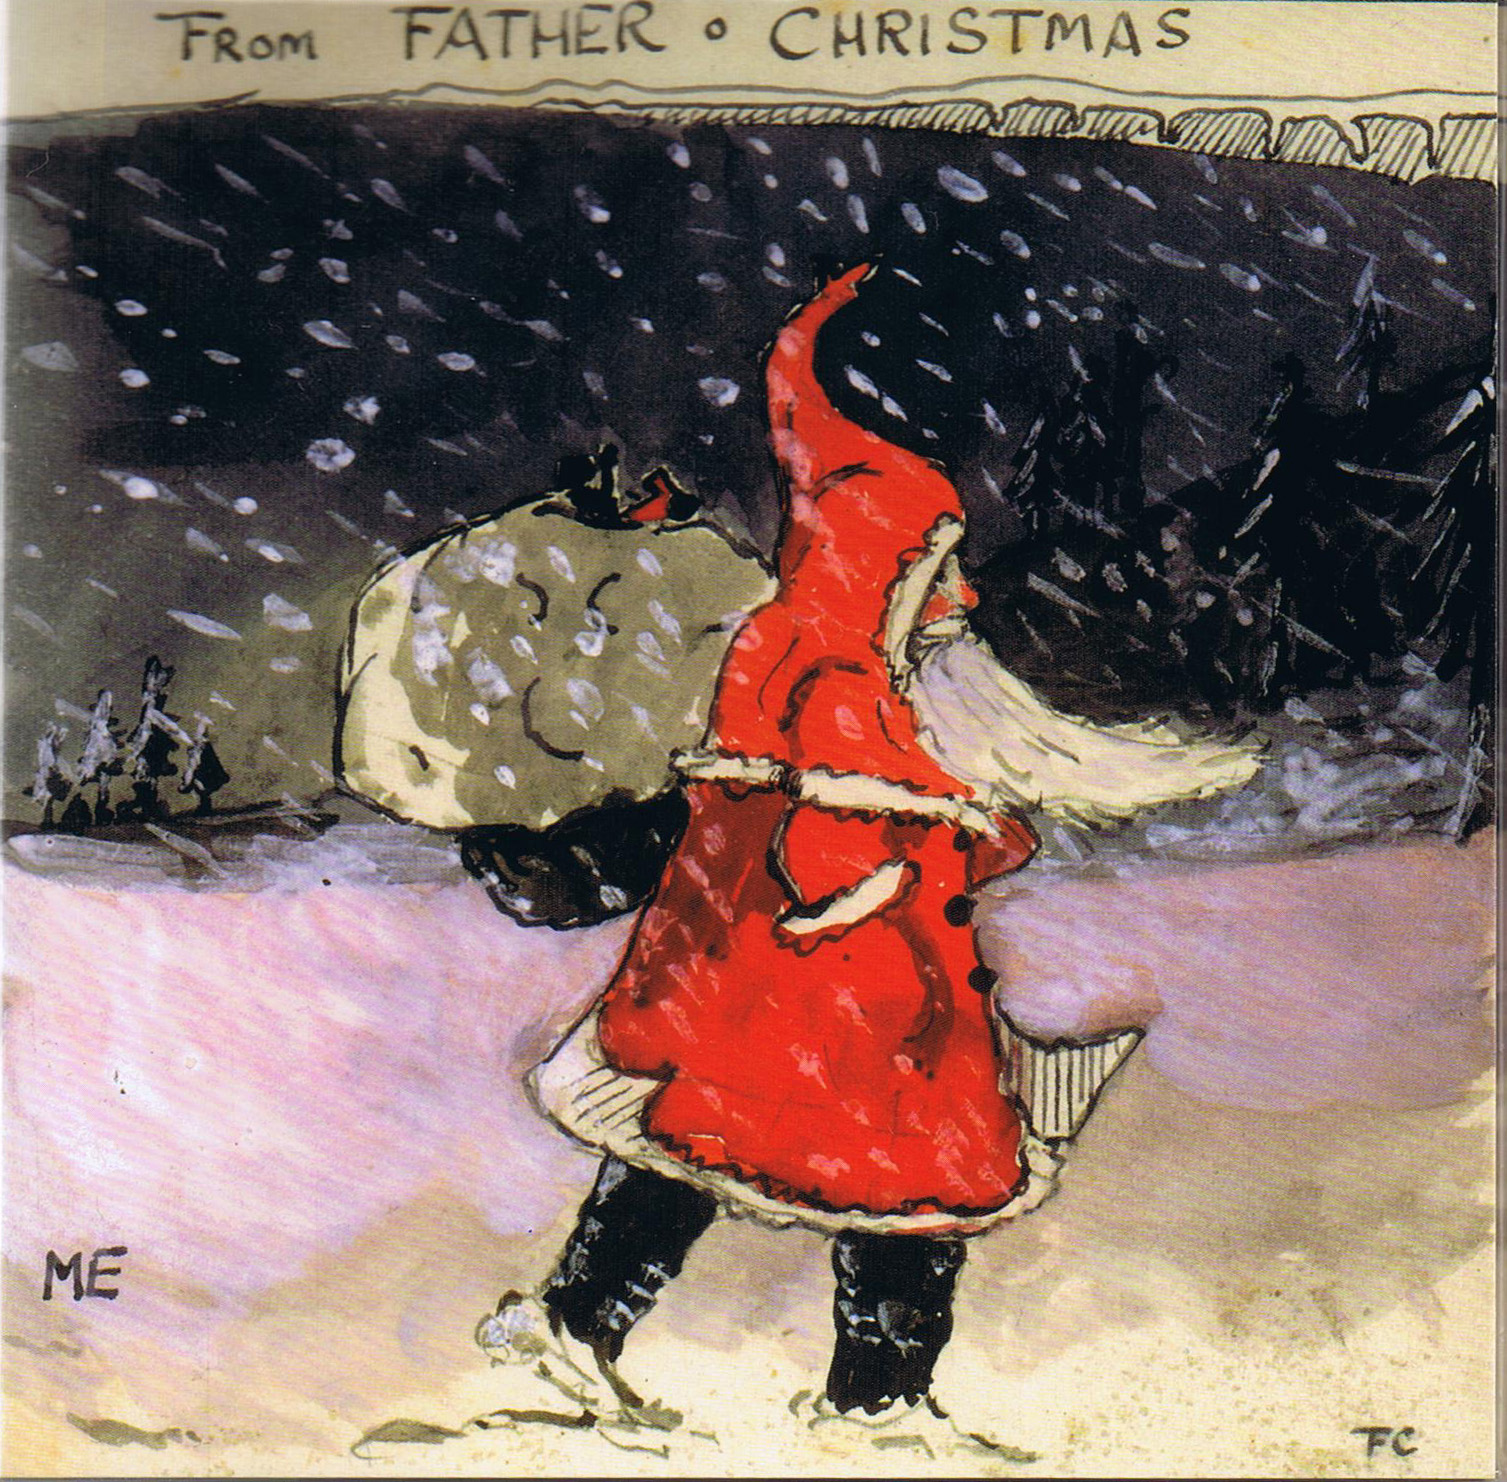 Father Christmas illustration by J.R.R. Tolkien